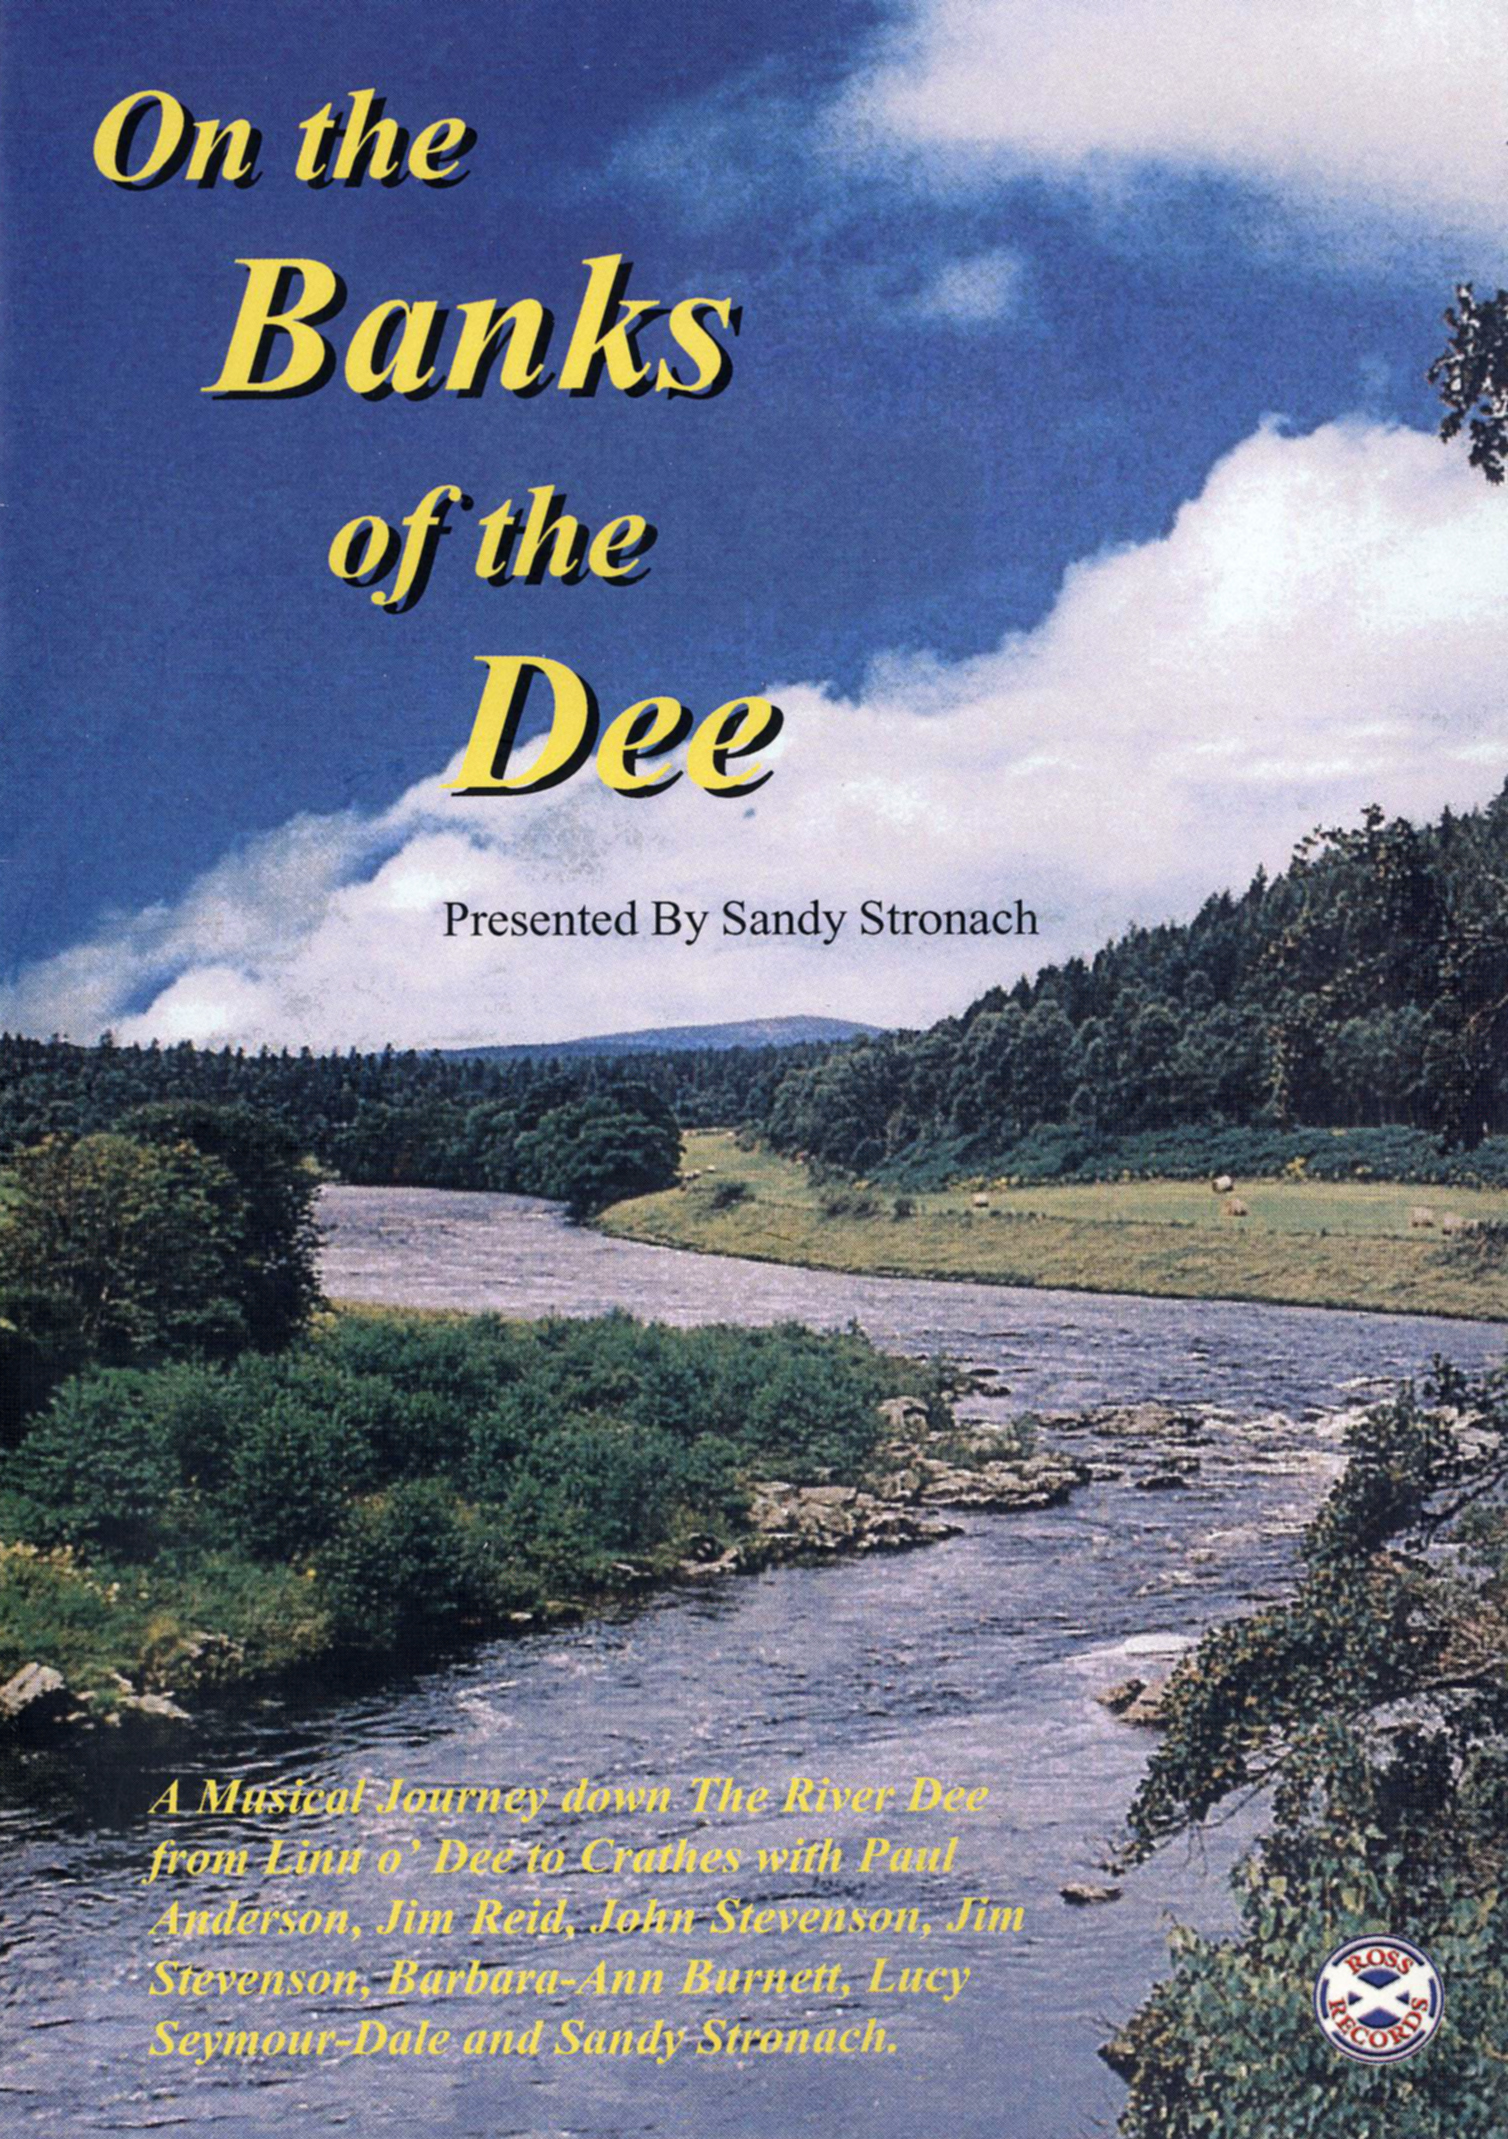 On the Banks of the Dee